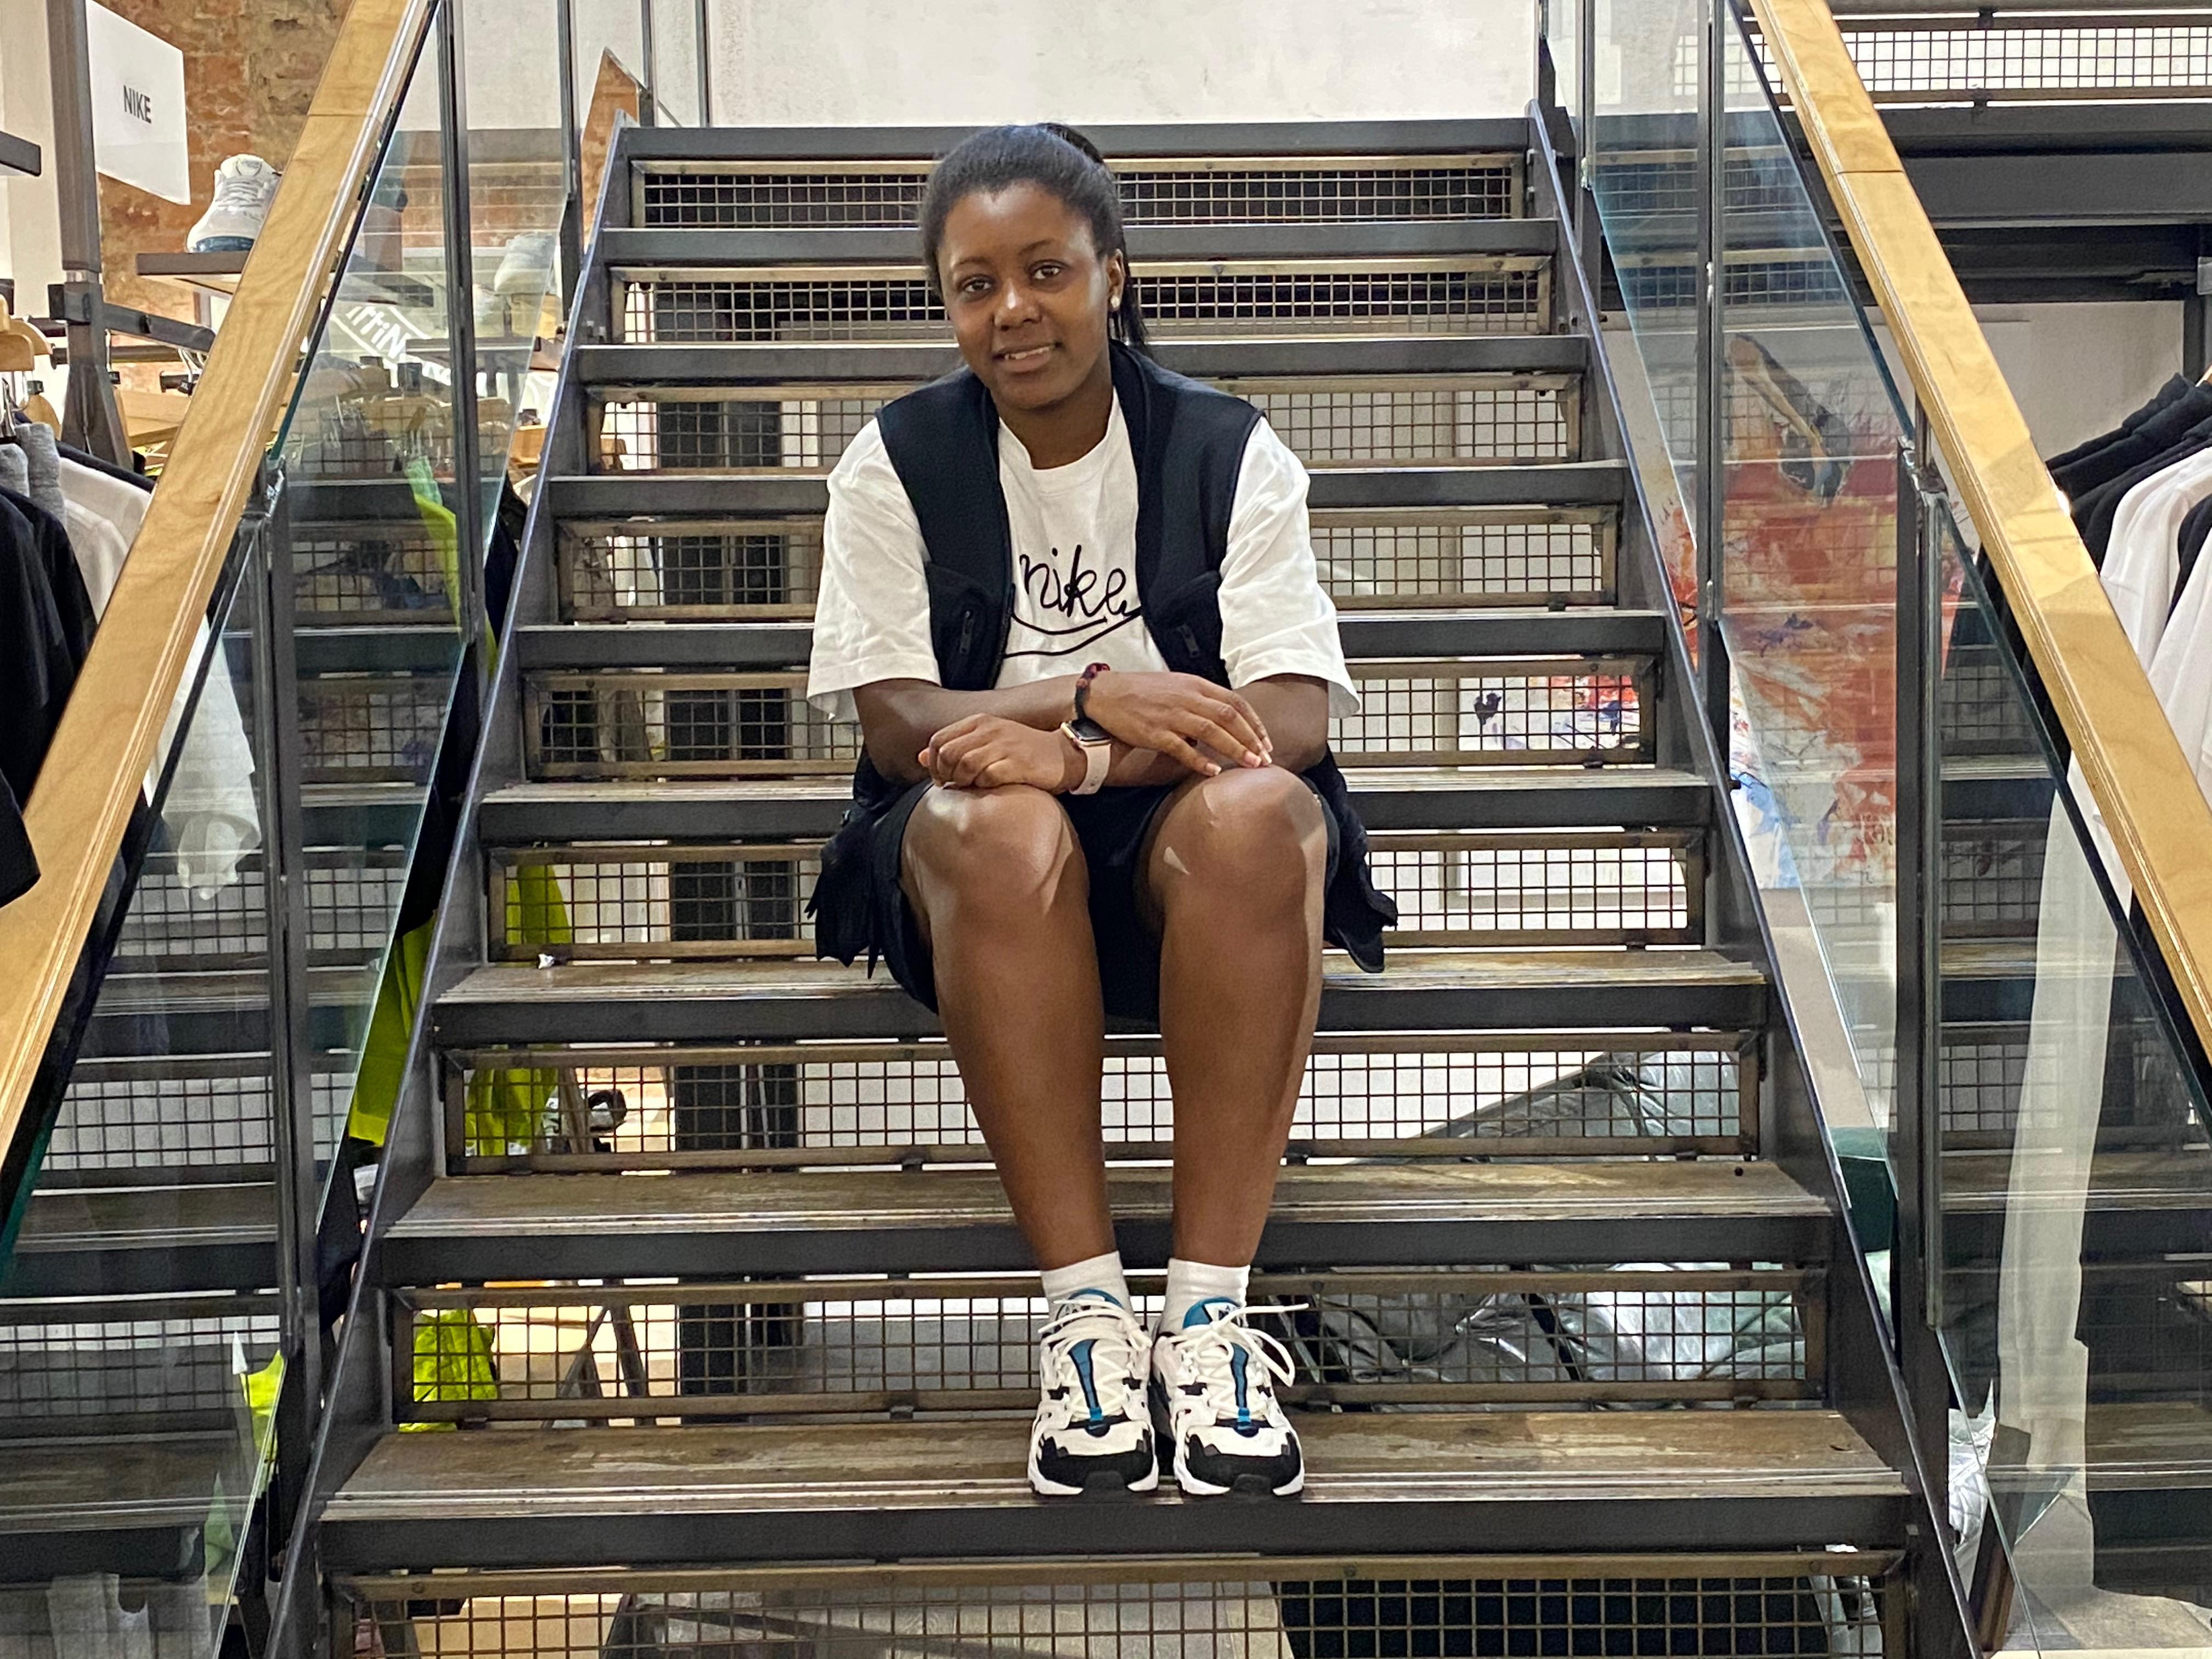 We're back at Carnaby Street to talk footwear & fashion with Sherelle